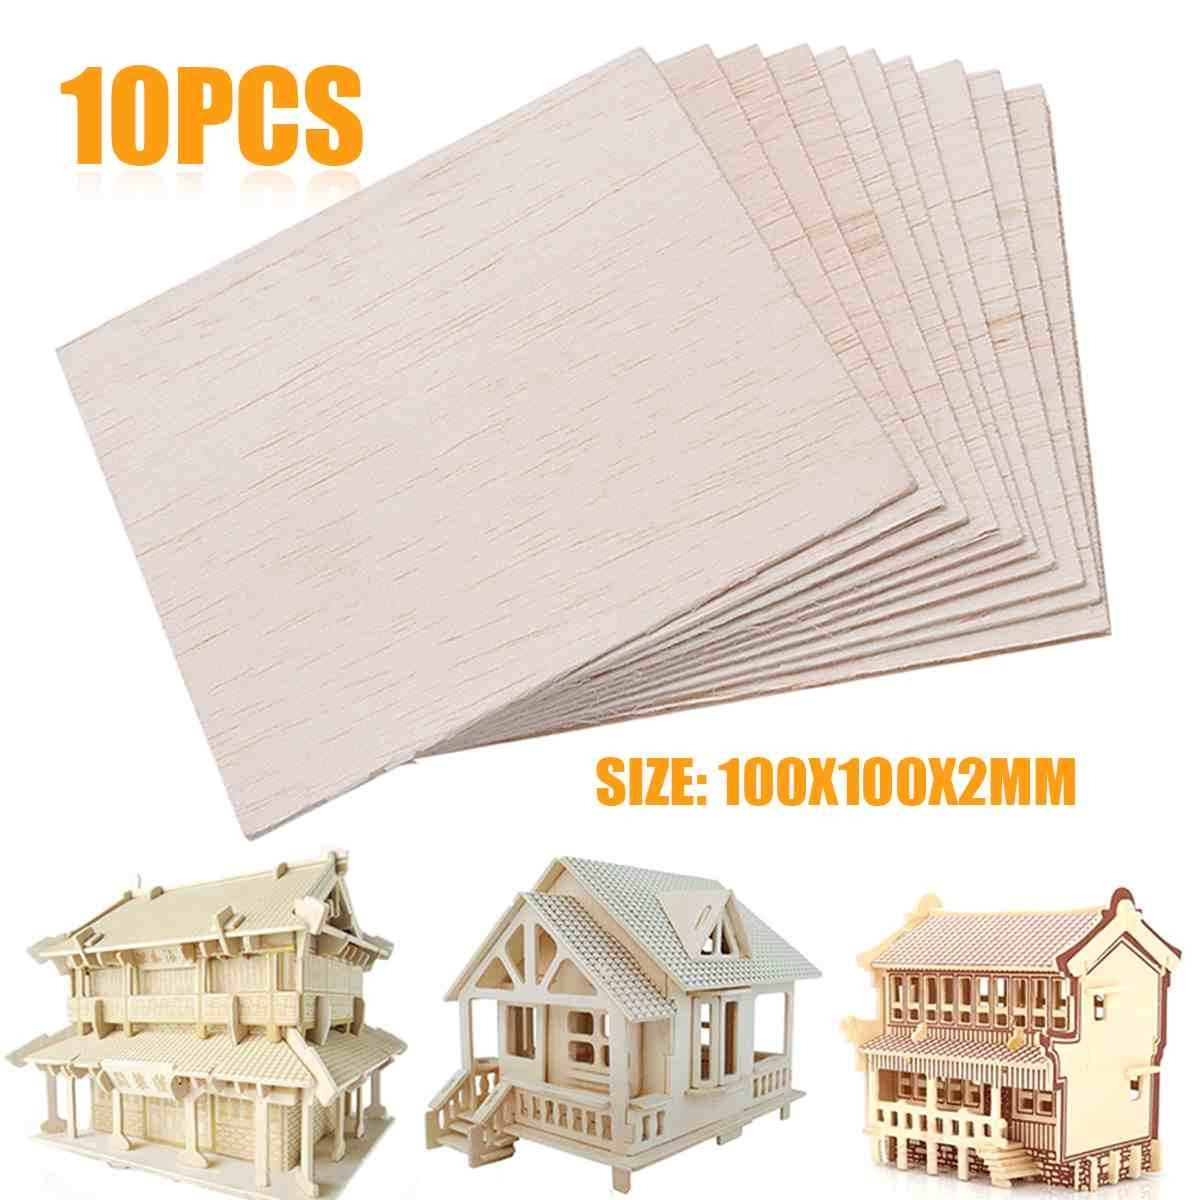 10Pcs 100x100x2mm Wooden Plate Model Balsa Wood Sheets DIY House Ship Aircraft